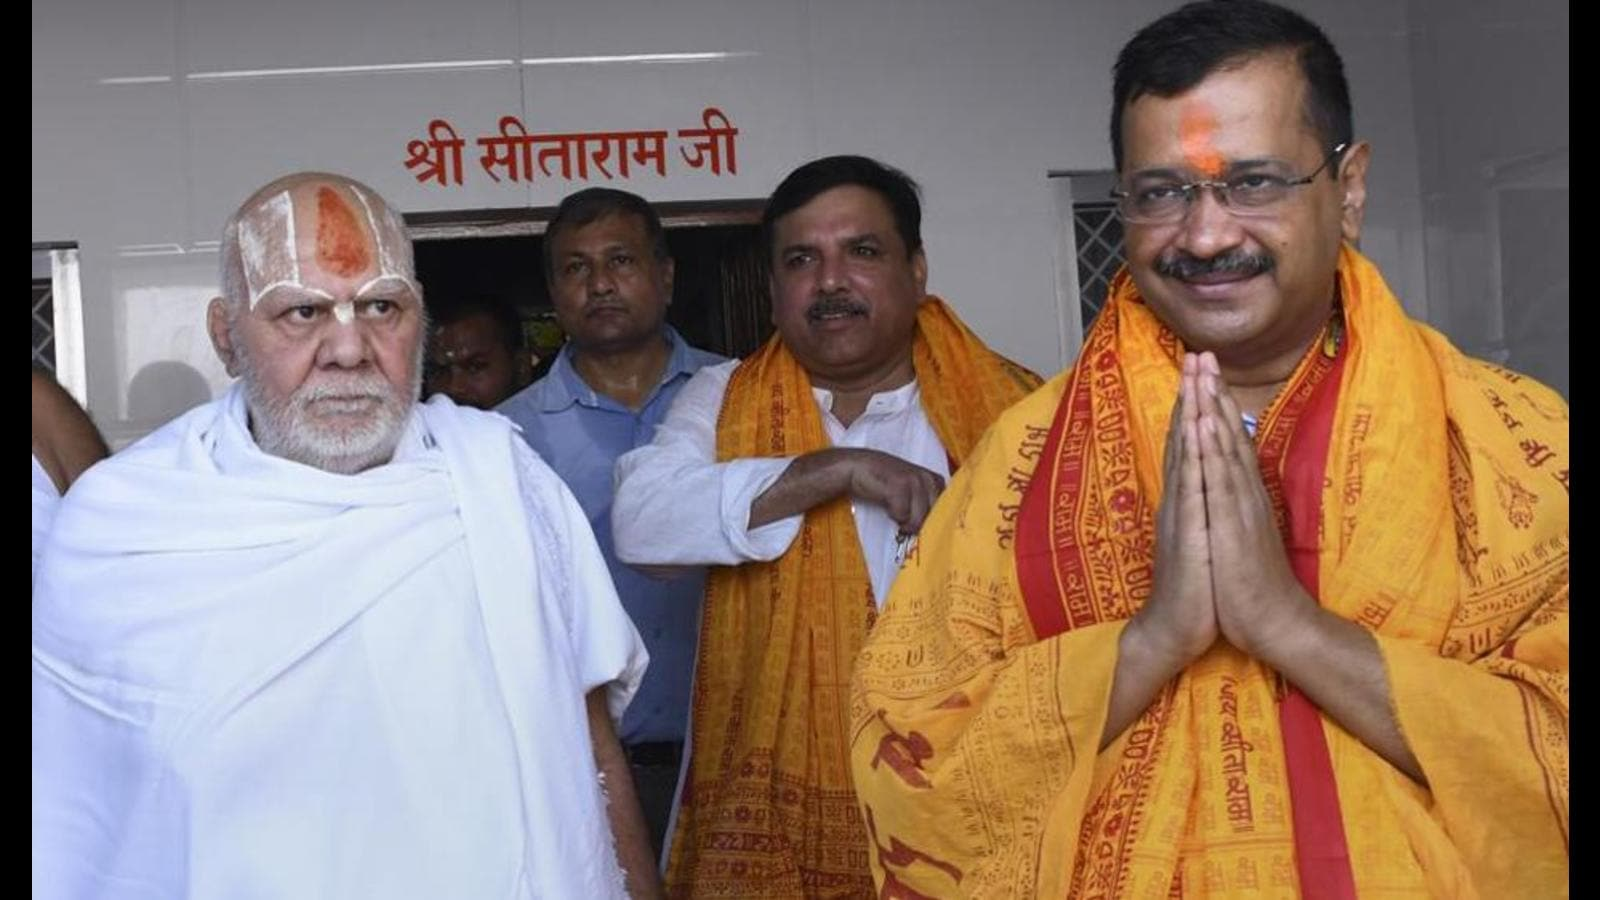 Ayodhya to be included in Delhi's free pilgrimage scheme, says Kejriwal